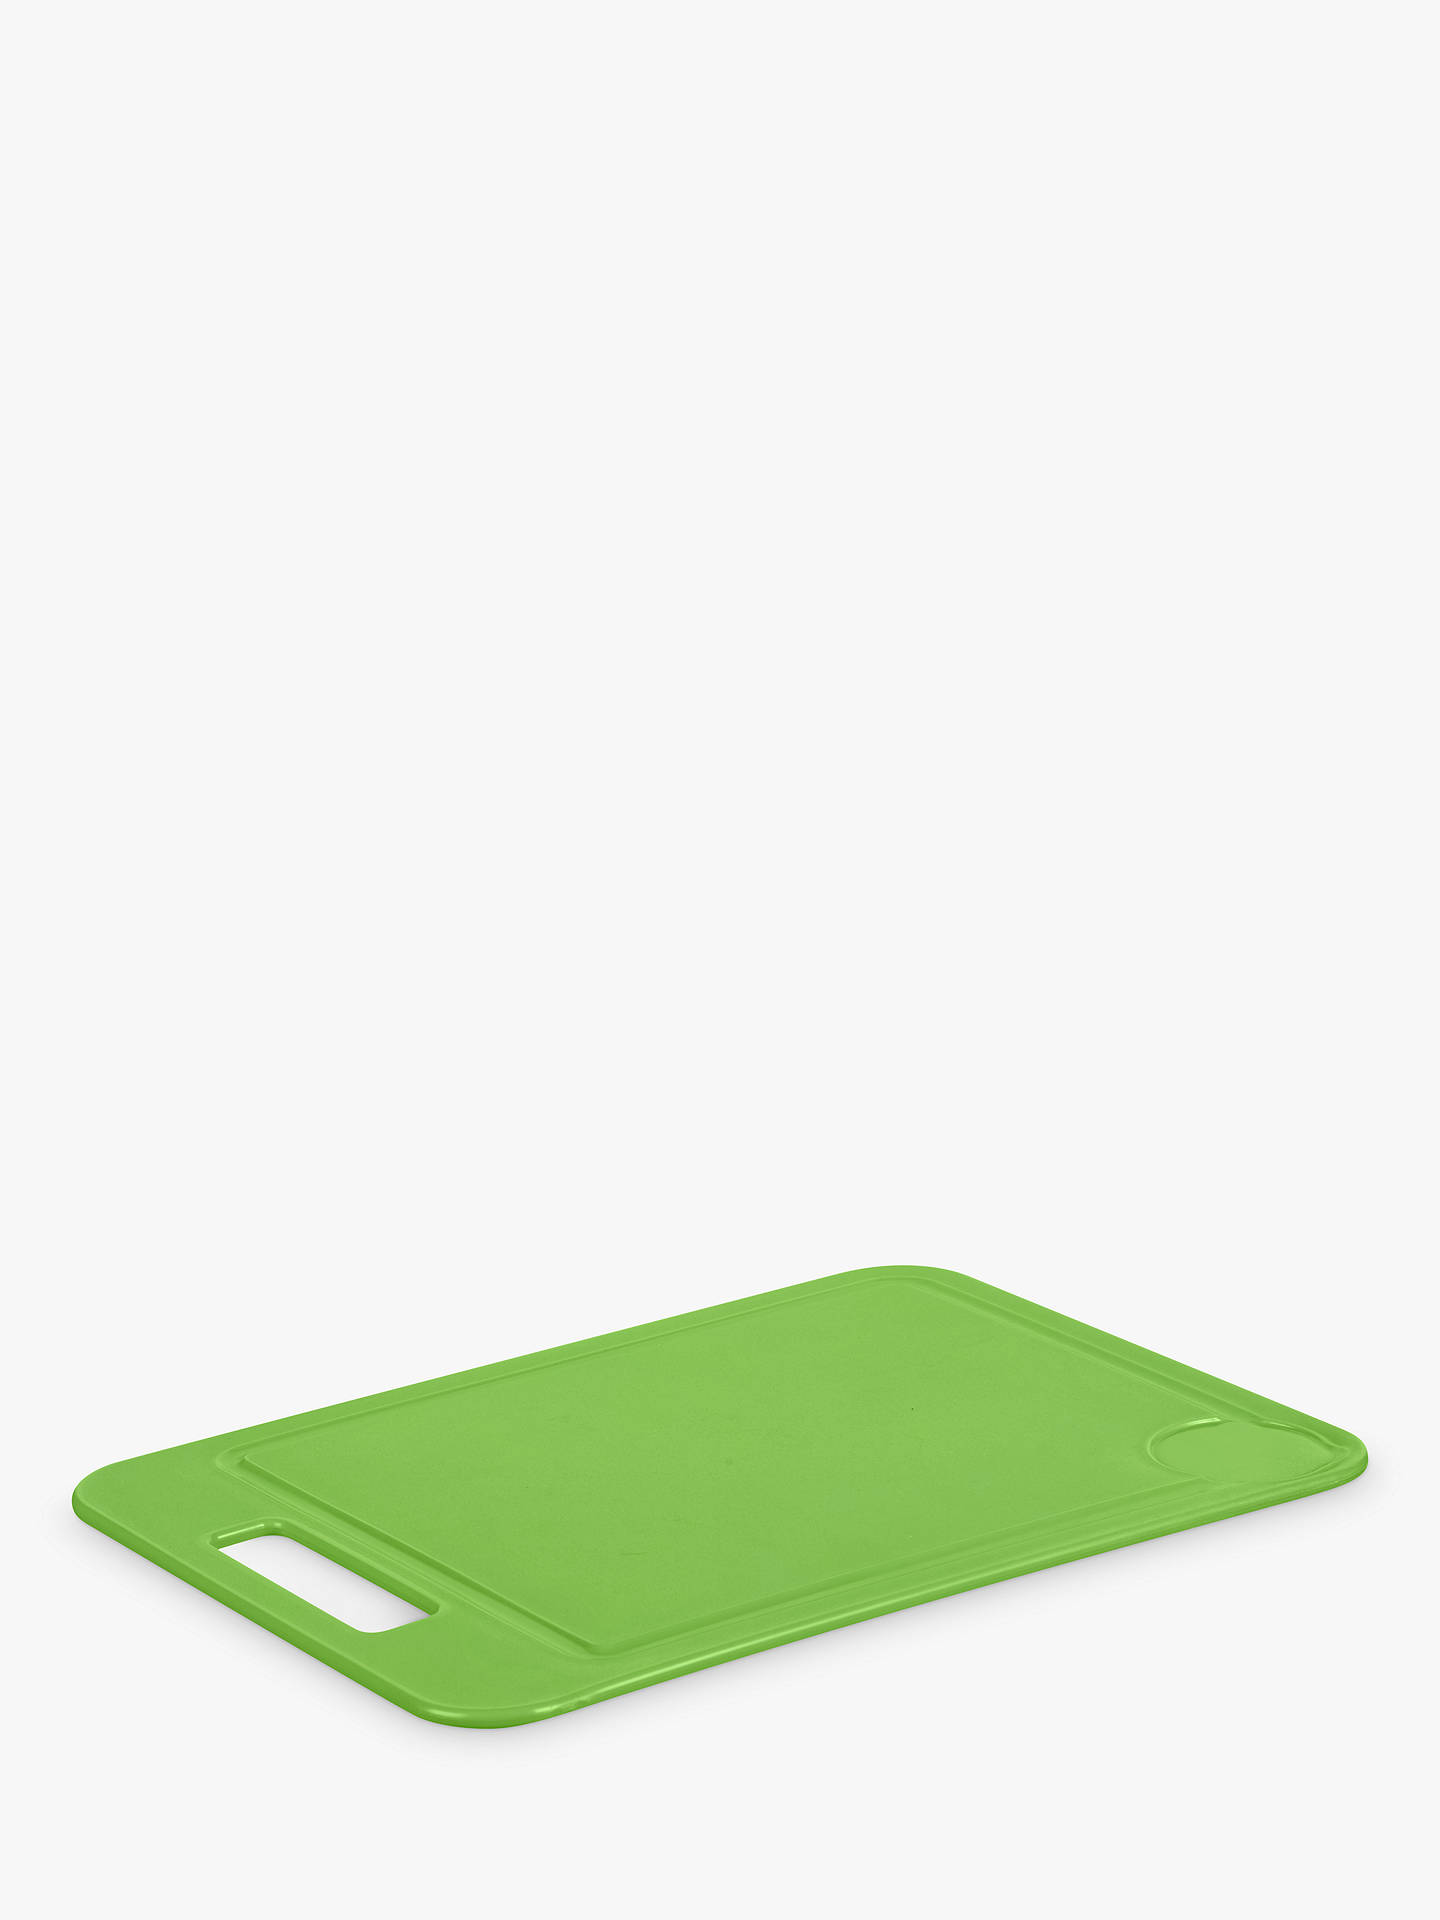 BuyJohn Lewis & Partners The Basics Chopping Board, Green Online at johnlewis.com